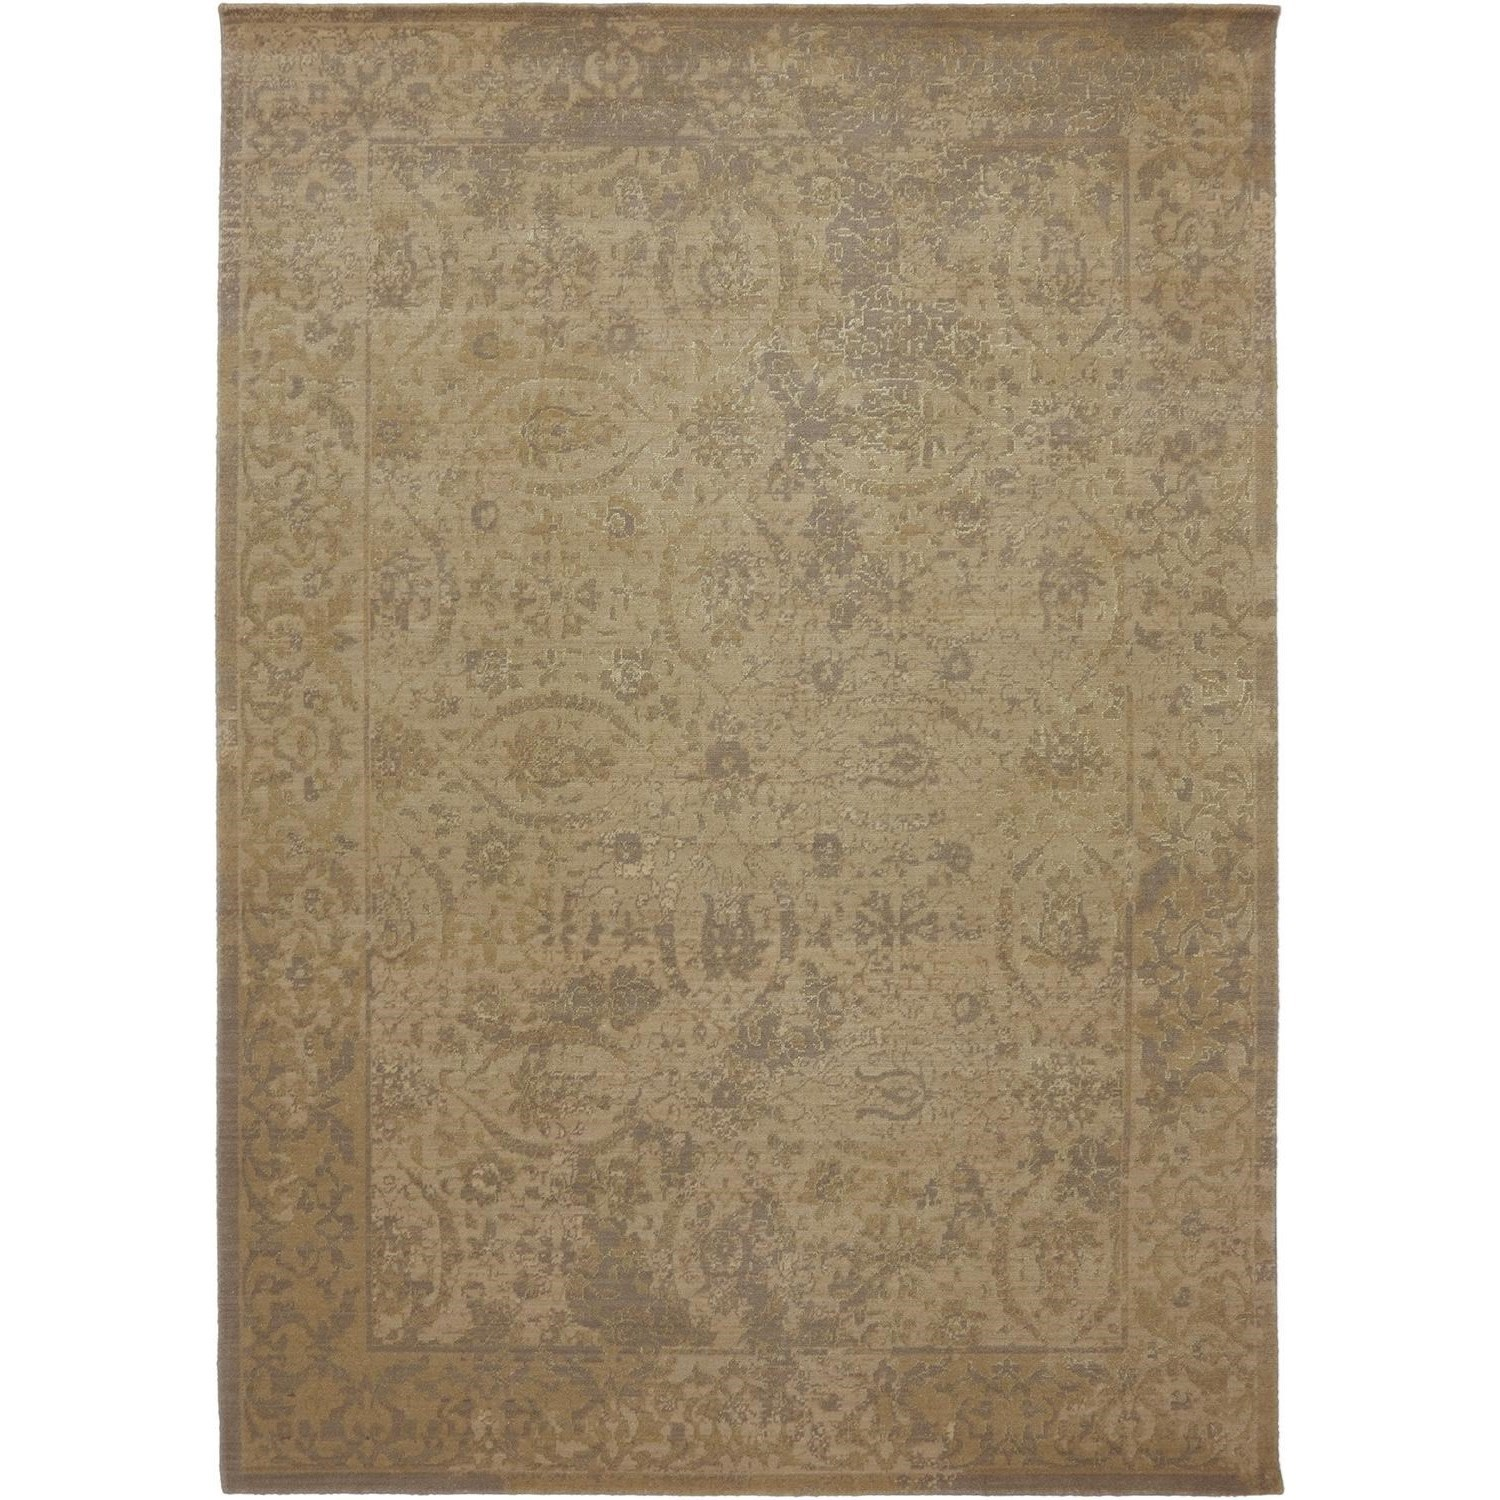 Karastan Rugs Evanescent 8'6x11'6 Terni Light Rug - Item Number: RG818 443 102138